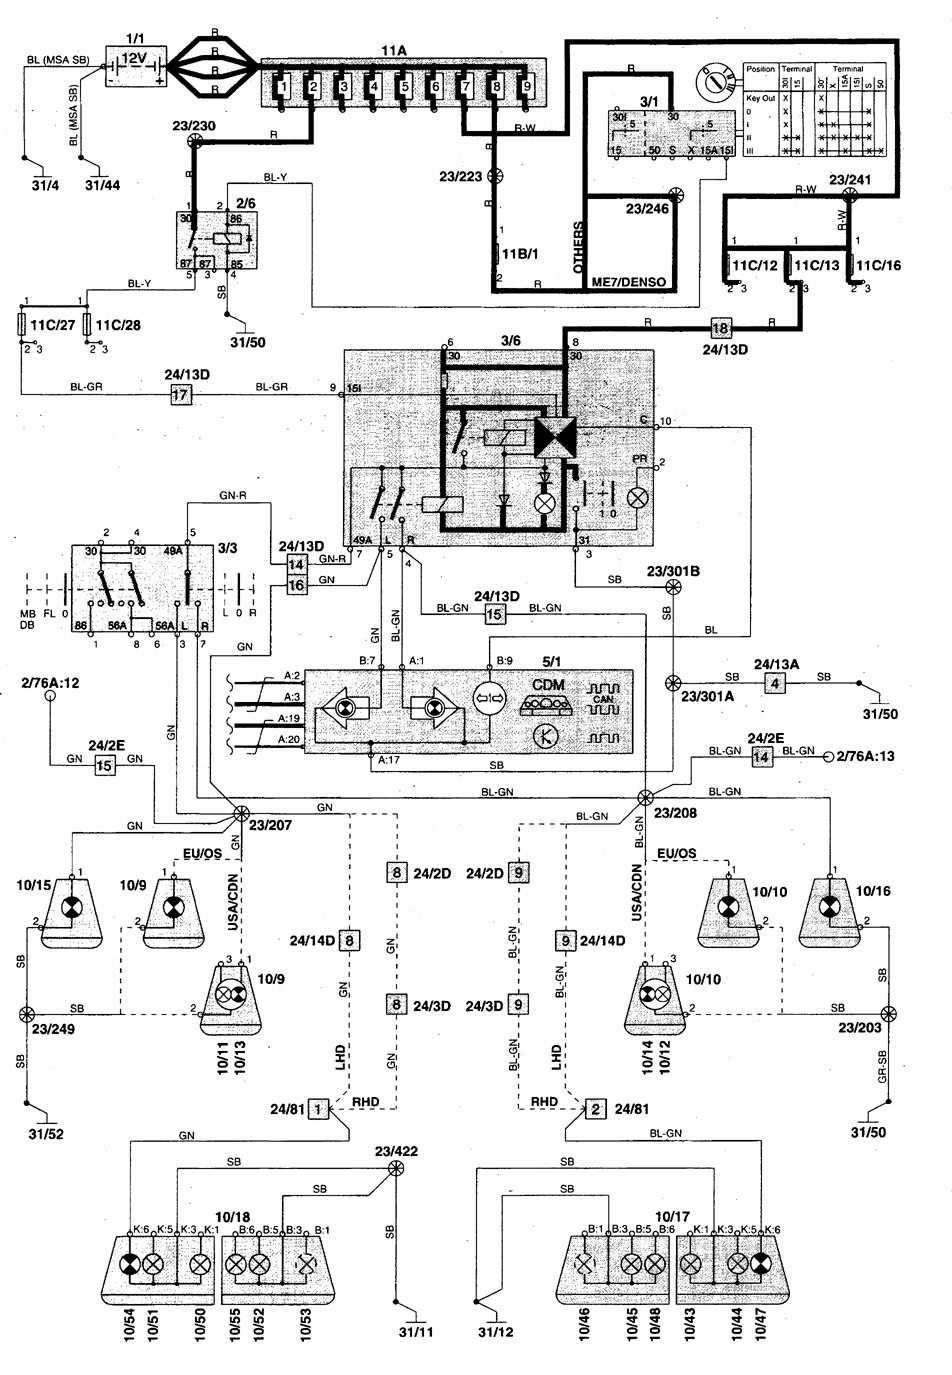 volvo-s70-wiring-diagram-turn-signal-lamp-1999 John Deere Wiring Diagram on john deere 850 fuel system, john deere lx255 wiring-diagram, moto guzzi 850 wiring diagram, john deere 133 wiring-diagram, john deere 850 controls, john deere tractors, mercury 850 wiring diagram, john deere 850 hydraulic system diagram, john deere 445 wiring-diagram, john deere 850 drive shaft, john deere 650 ignition diagram, john deere z225 wiring-diagram, john deere m wiring-diagram, john deere 455 wiring-diagram, john deere 1020 wiring-diagram, john deere 850 circuit breaker, john deere 850 fuse, john deere 145 wiring-diagram, john deere 322 wiring-diagram, john deere 155c wiring-diagram,